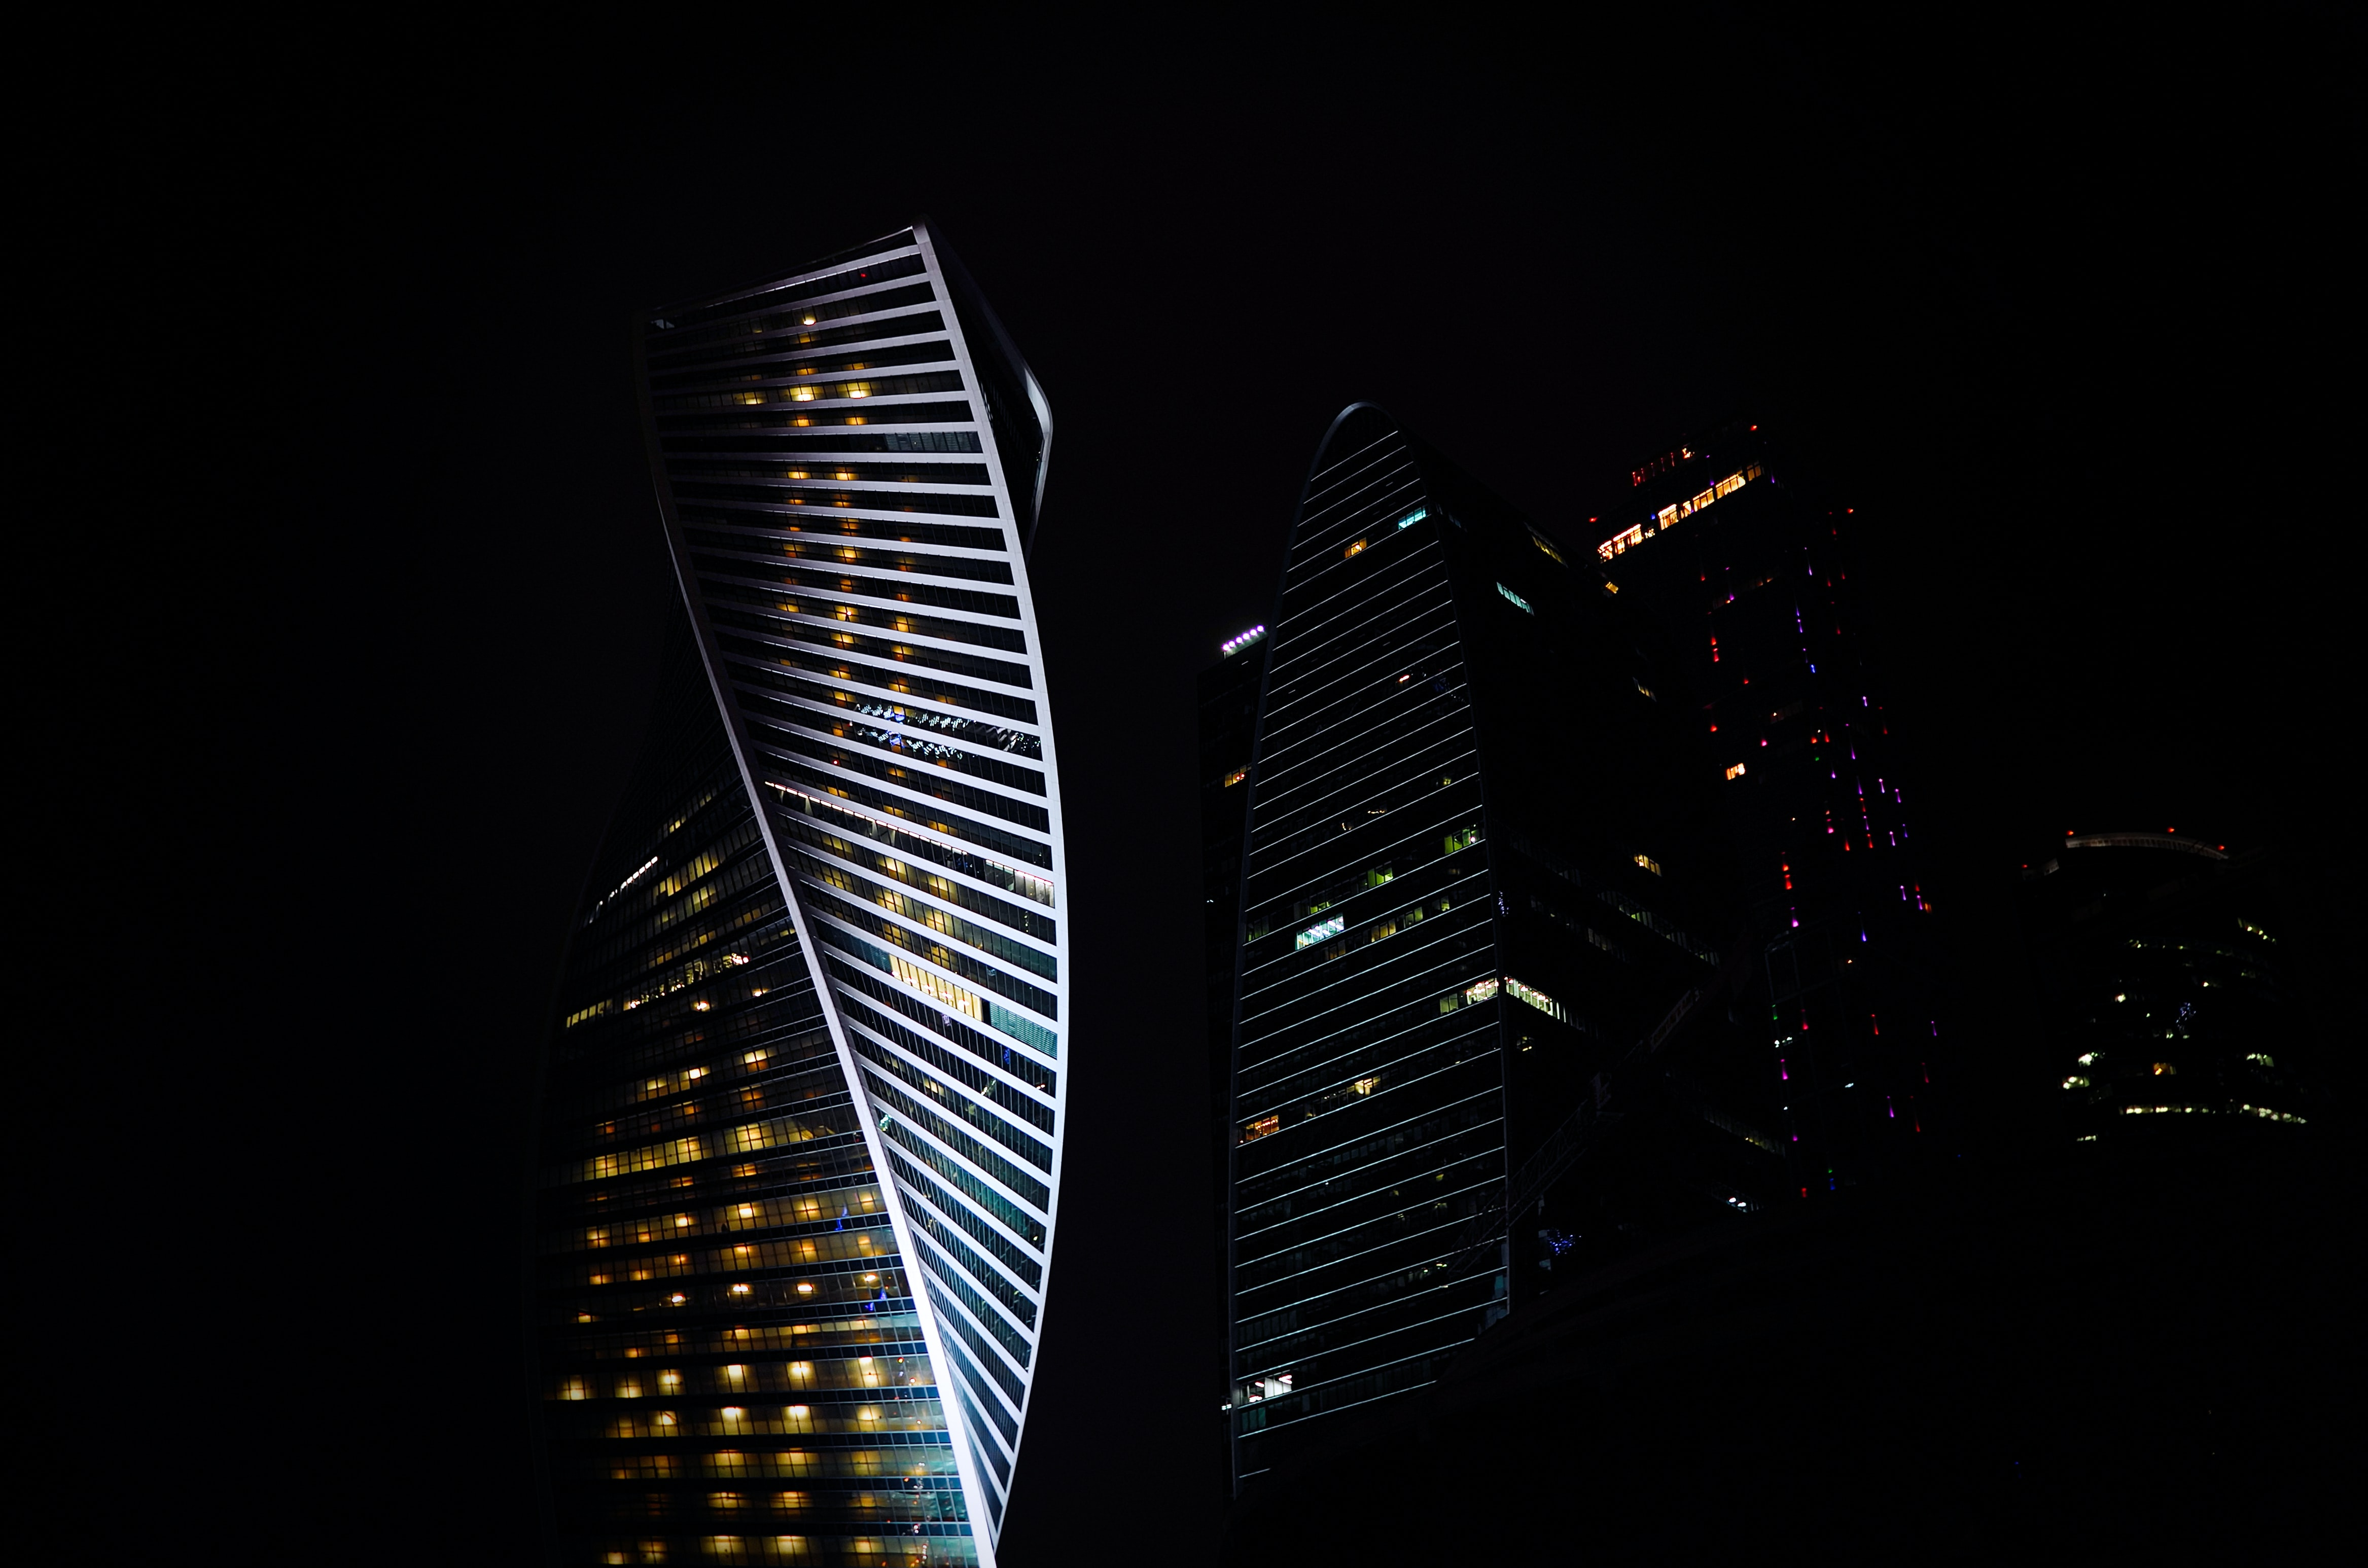 Twisting façades of office buildings in Moscow at night